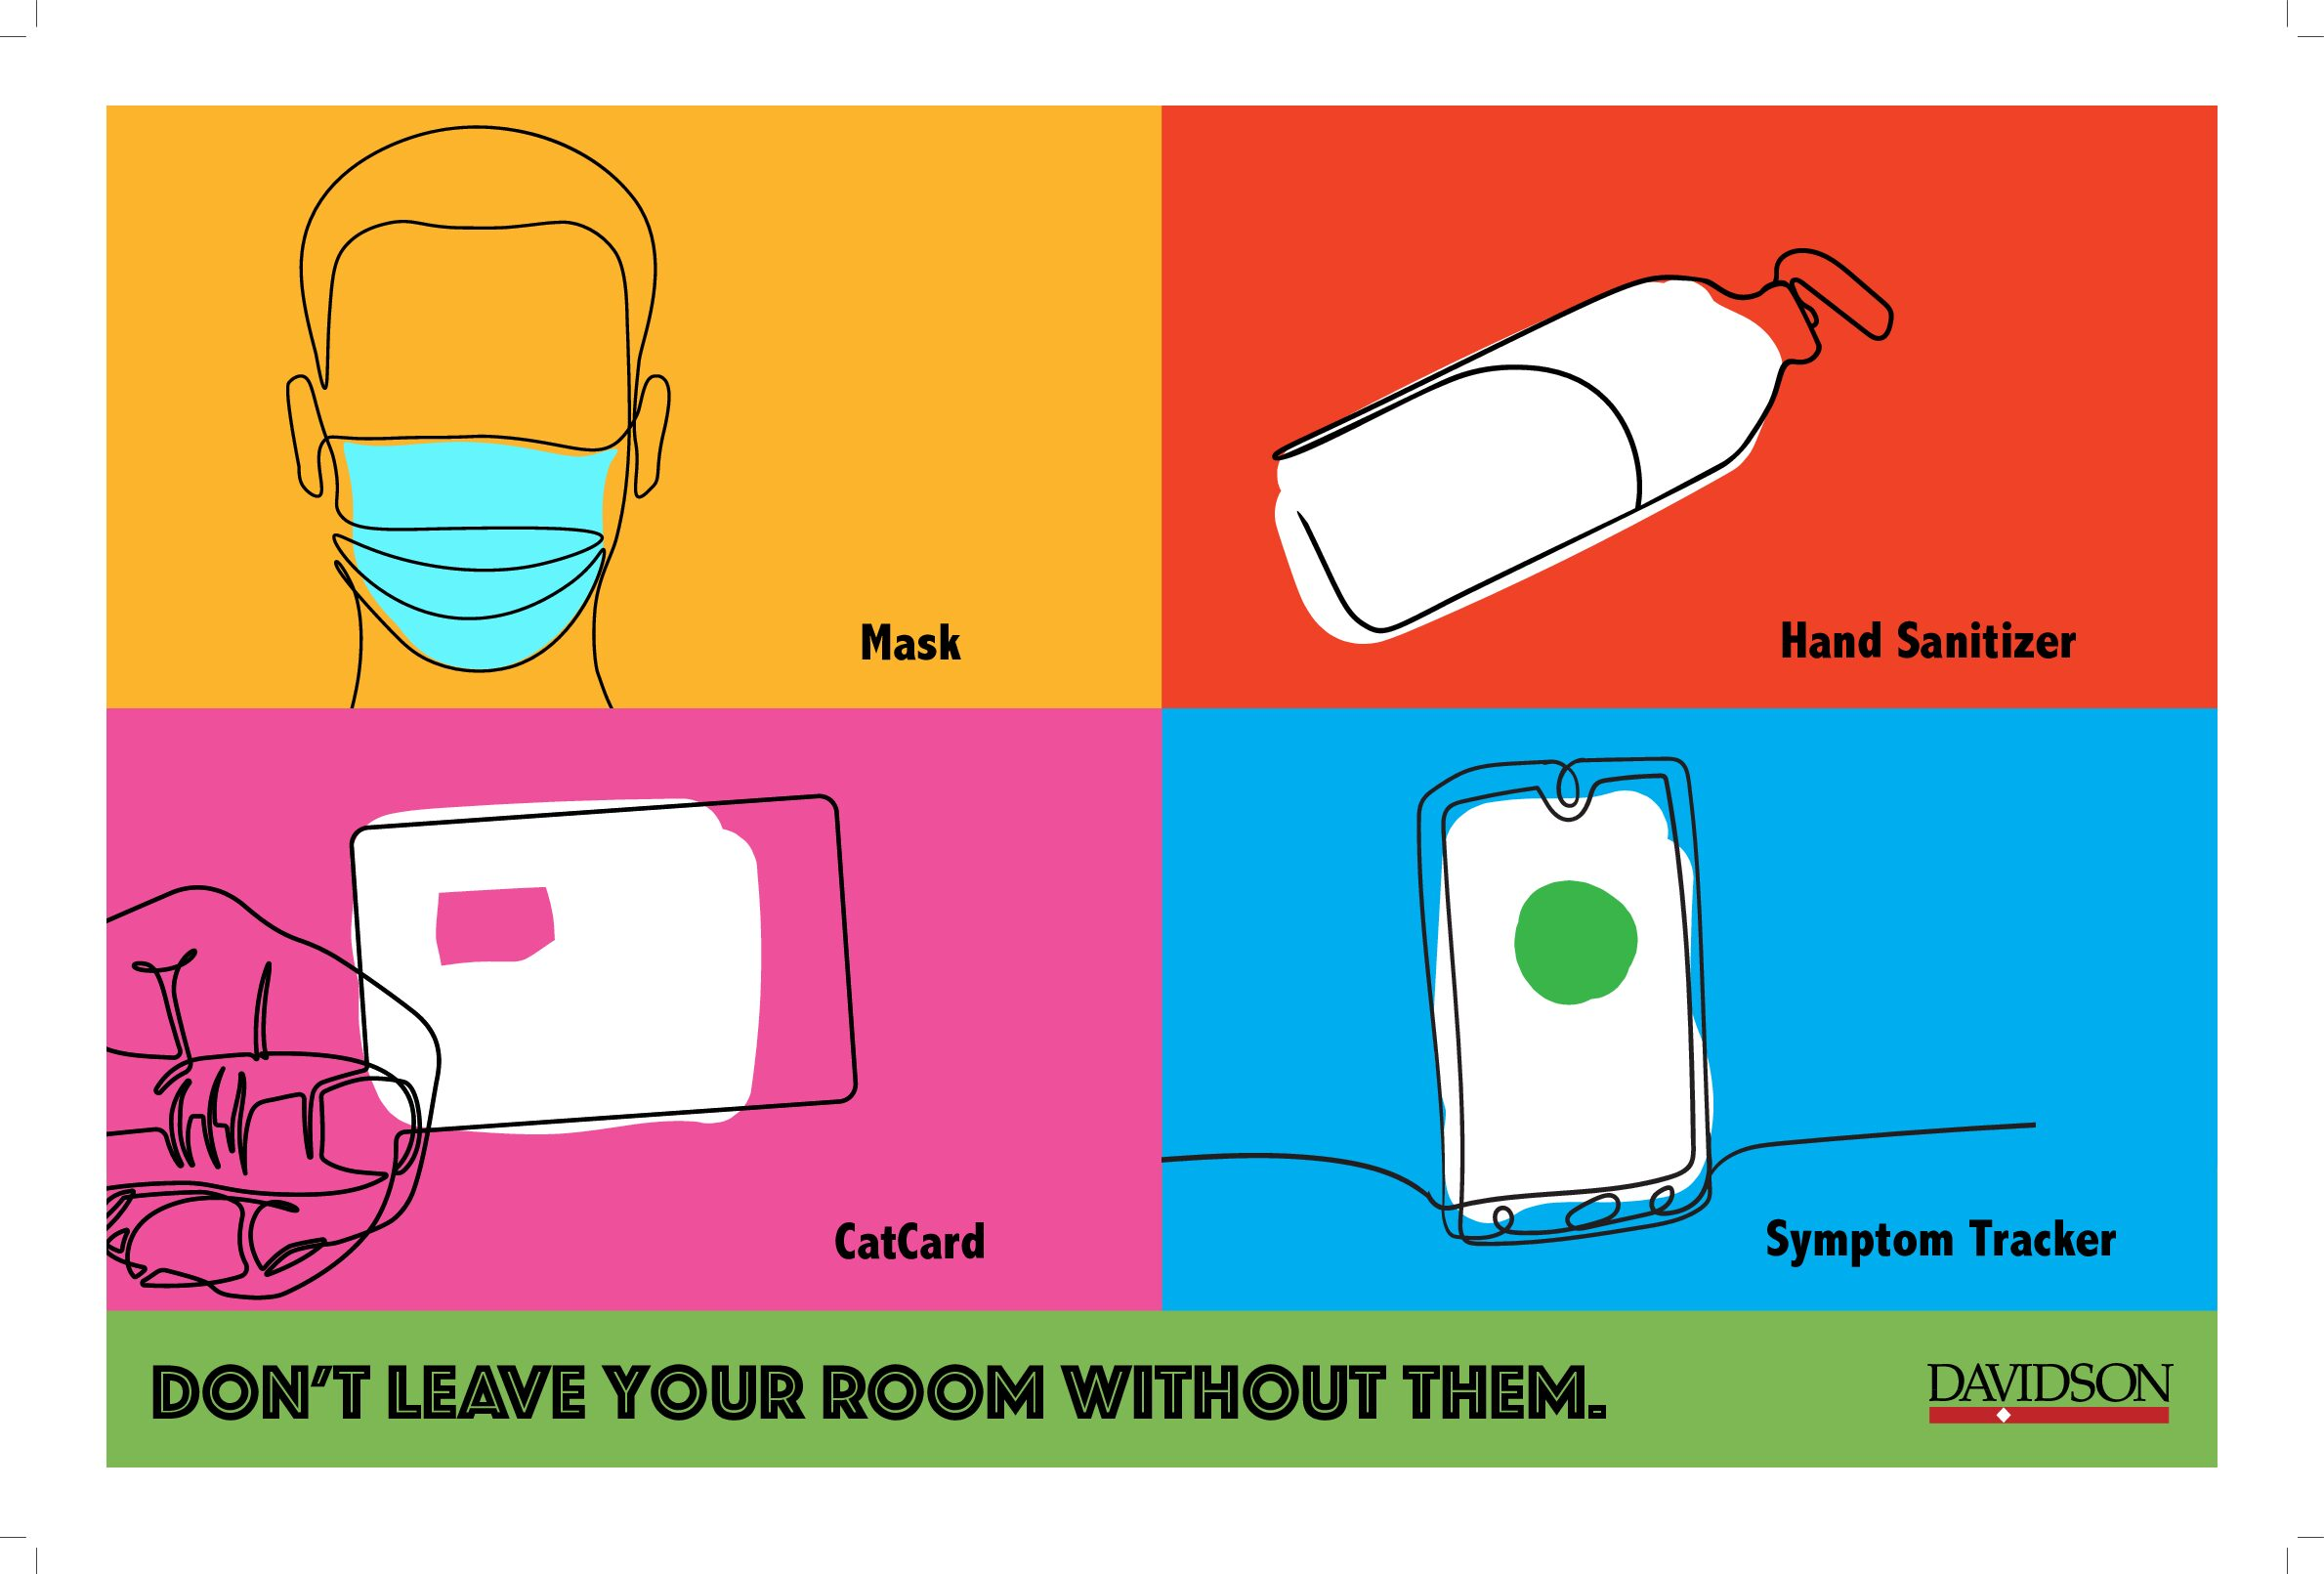 Don't leave your room without them: CatCard, Symptom Tracker, Mask, Sanitizer.